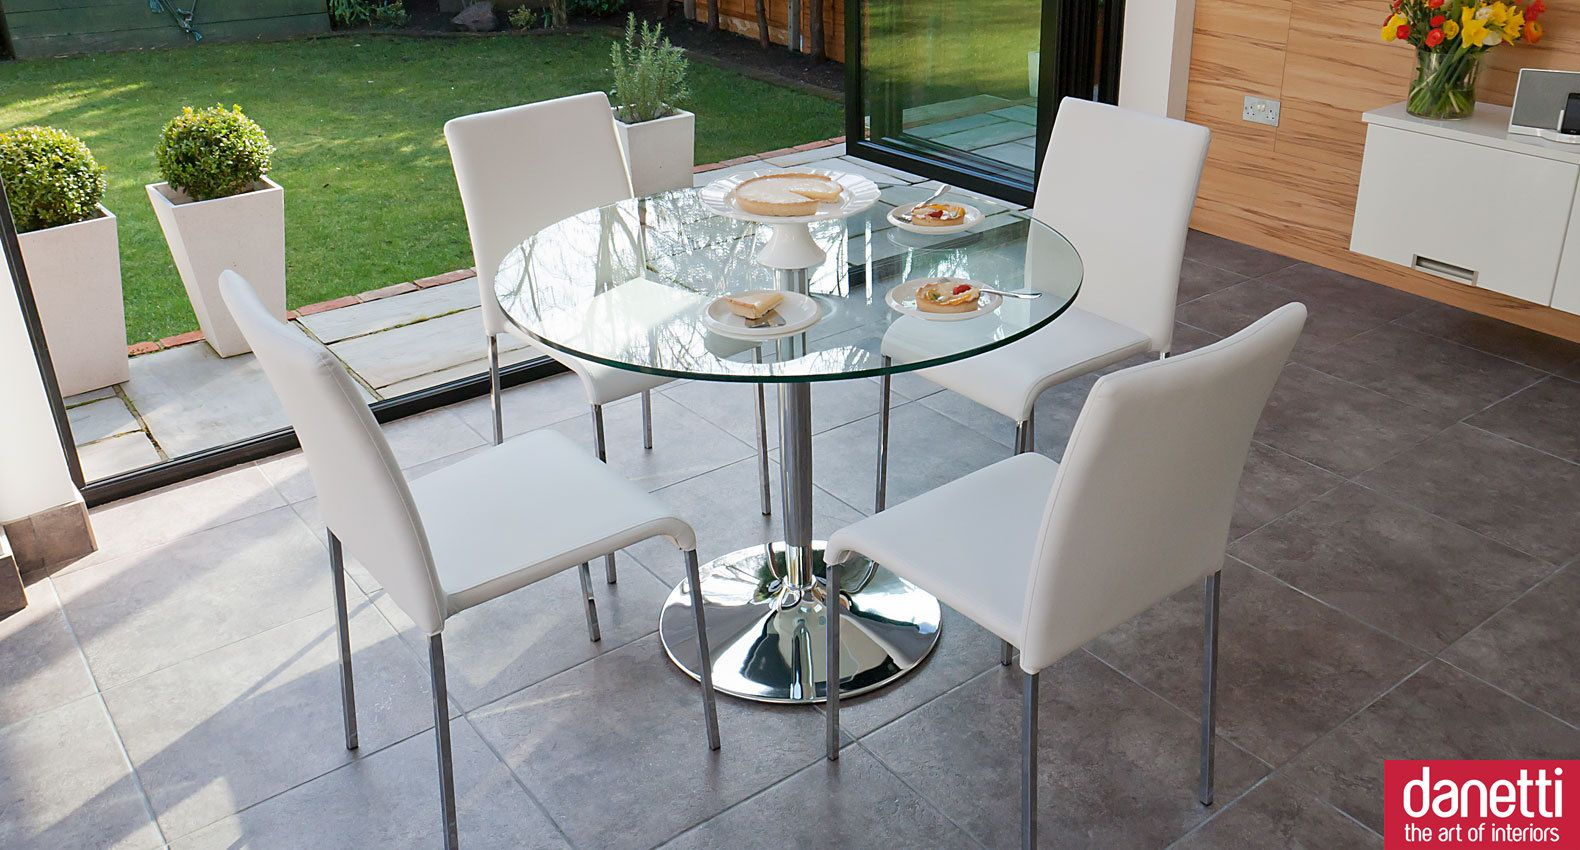 Naro Clear Glass and Tori 4 Seater Dining Set | Pinterest | Glass ...